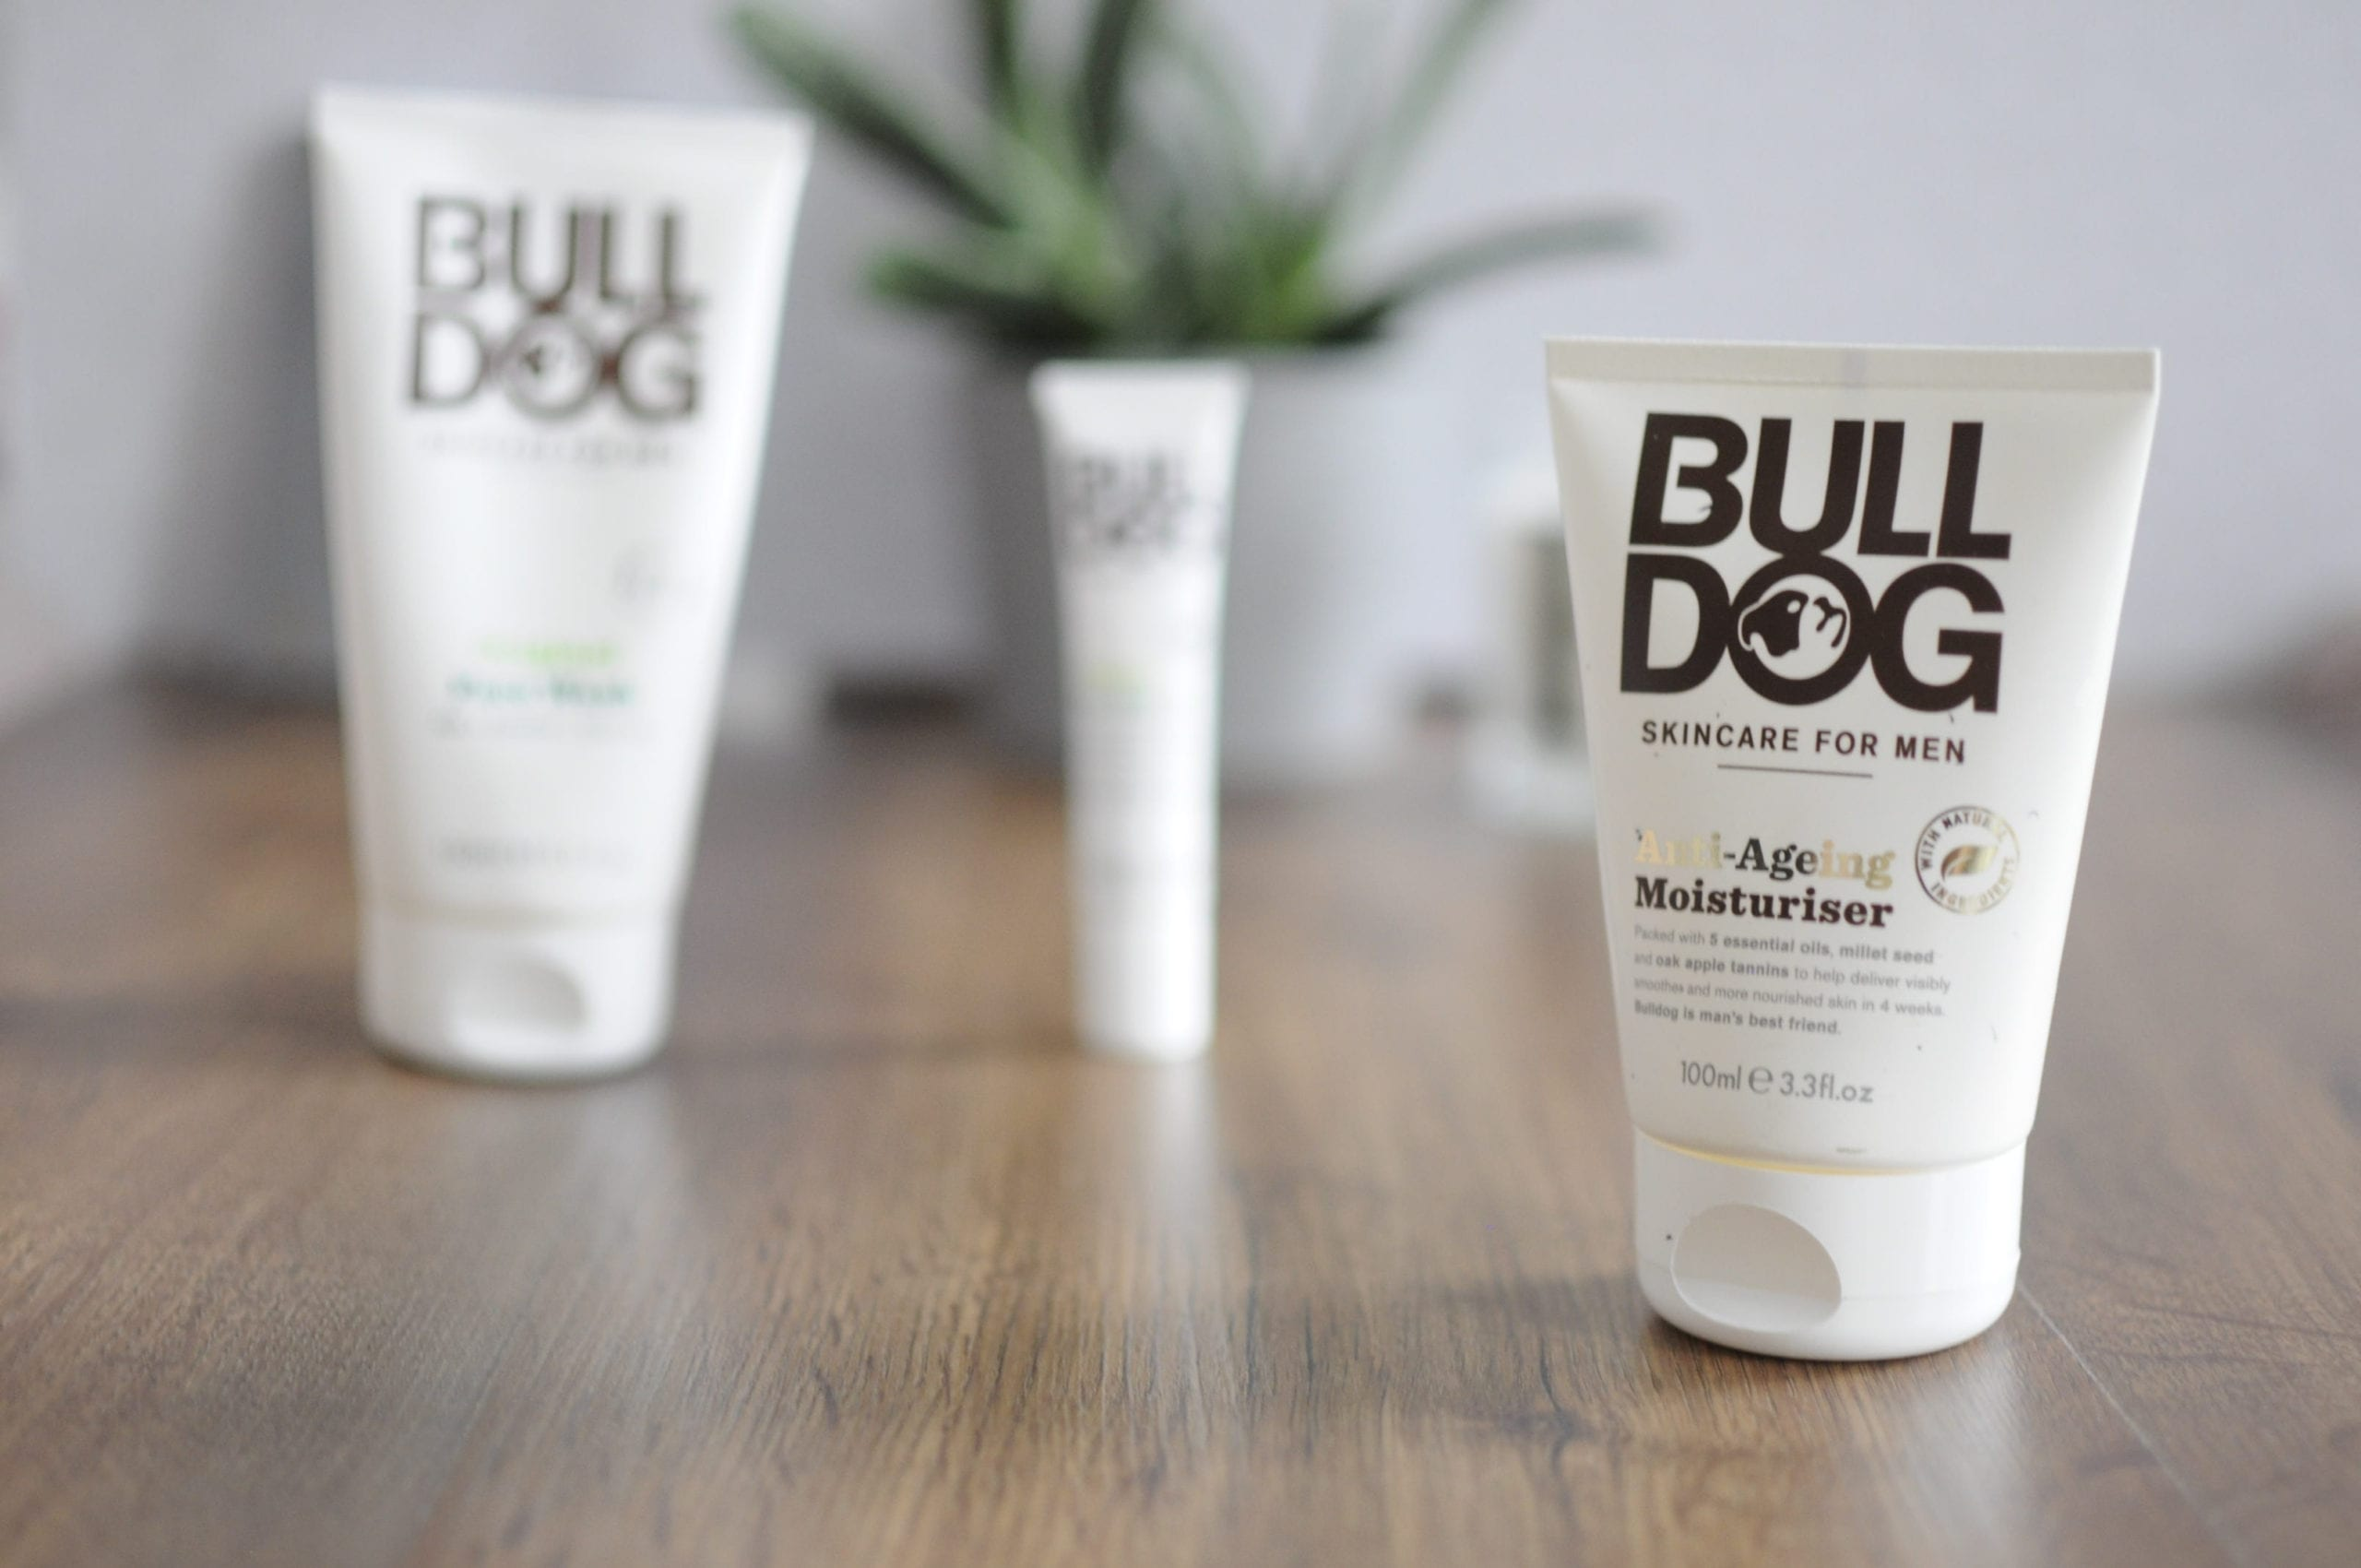 Bulldog skin care Anti Ageing